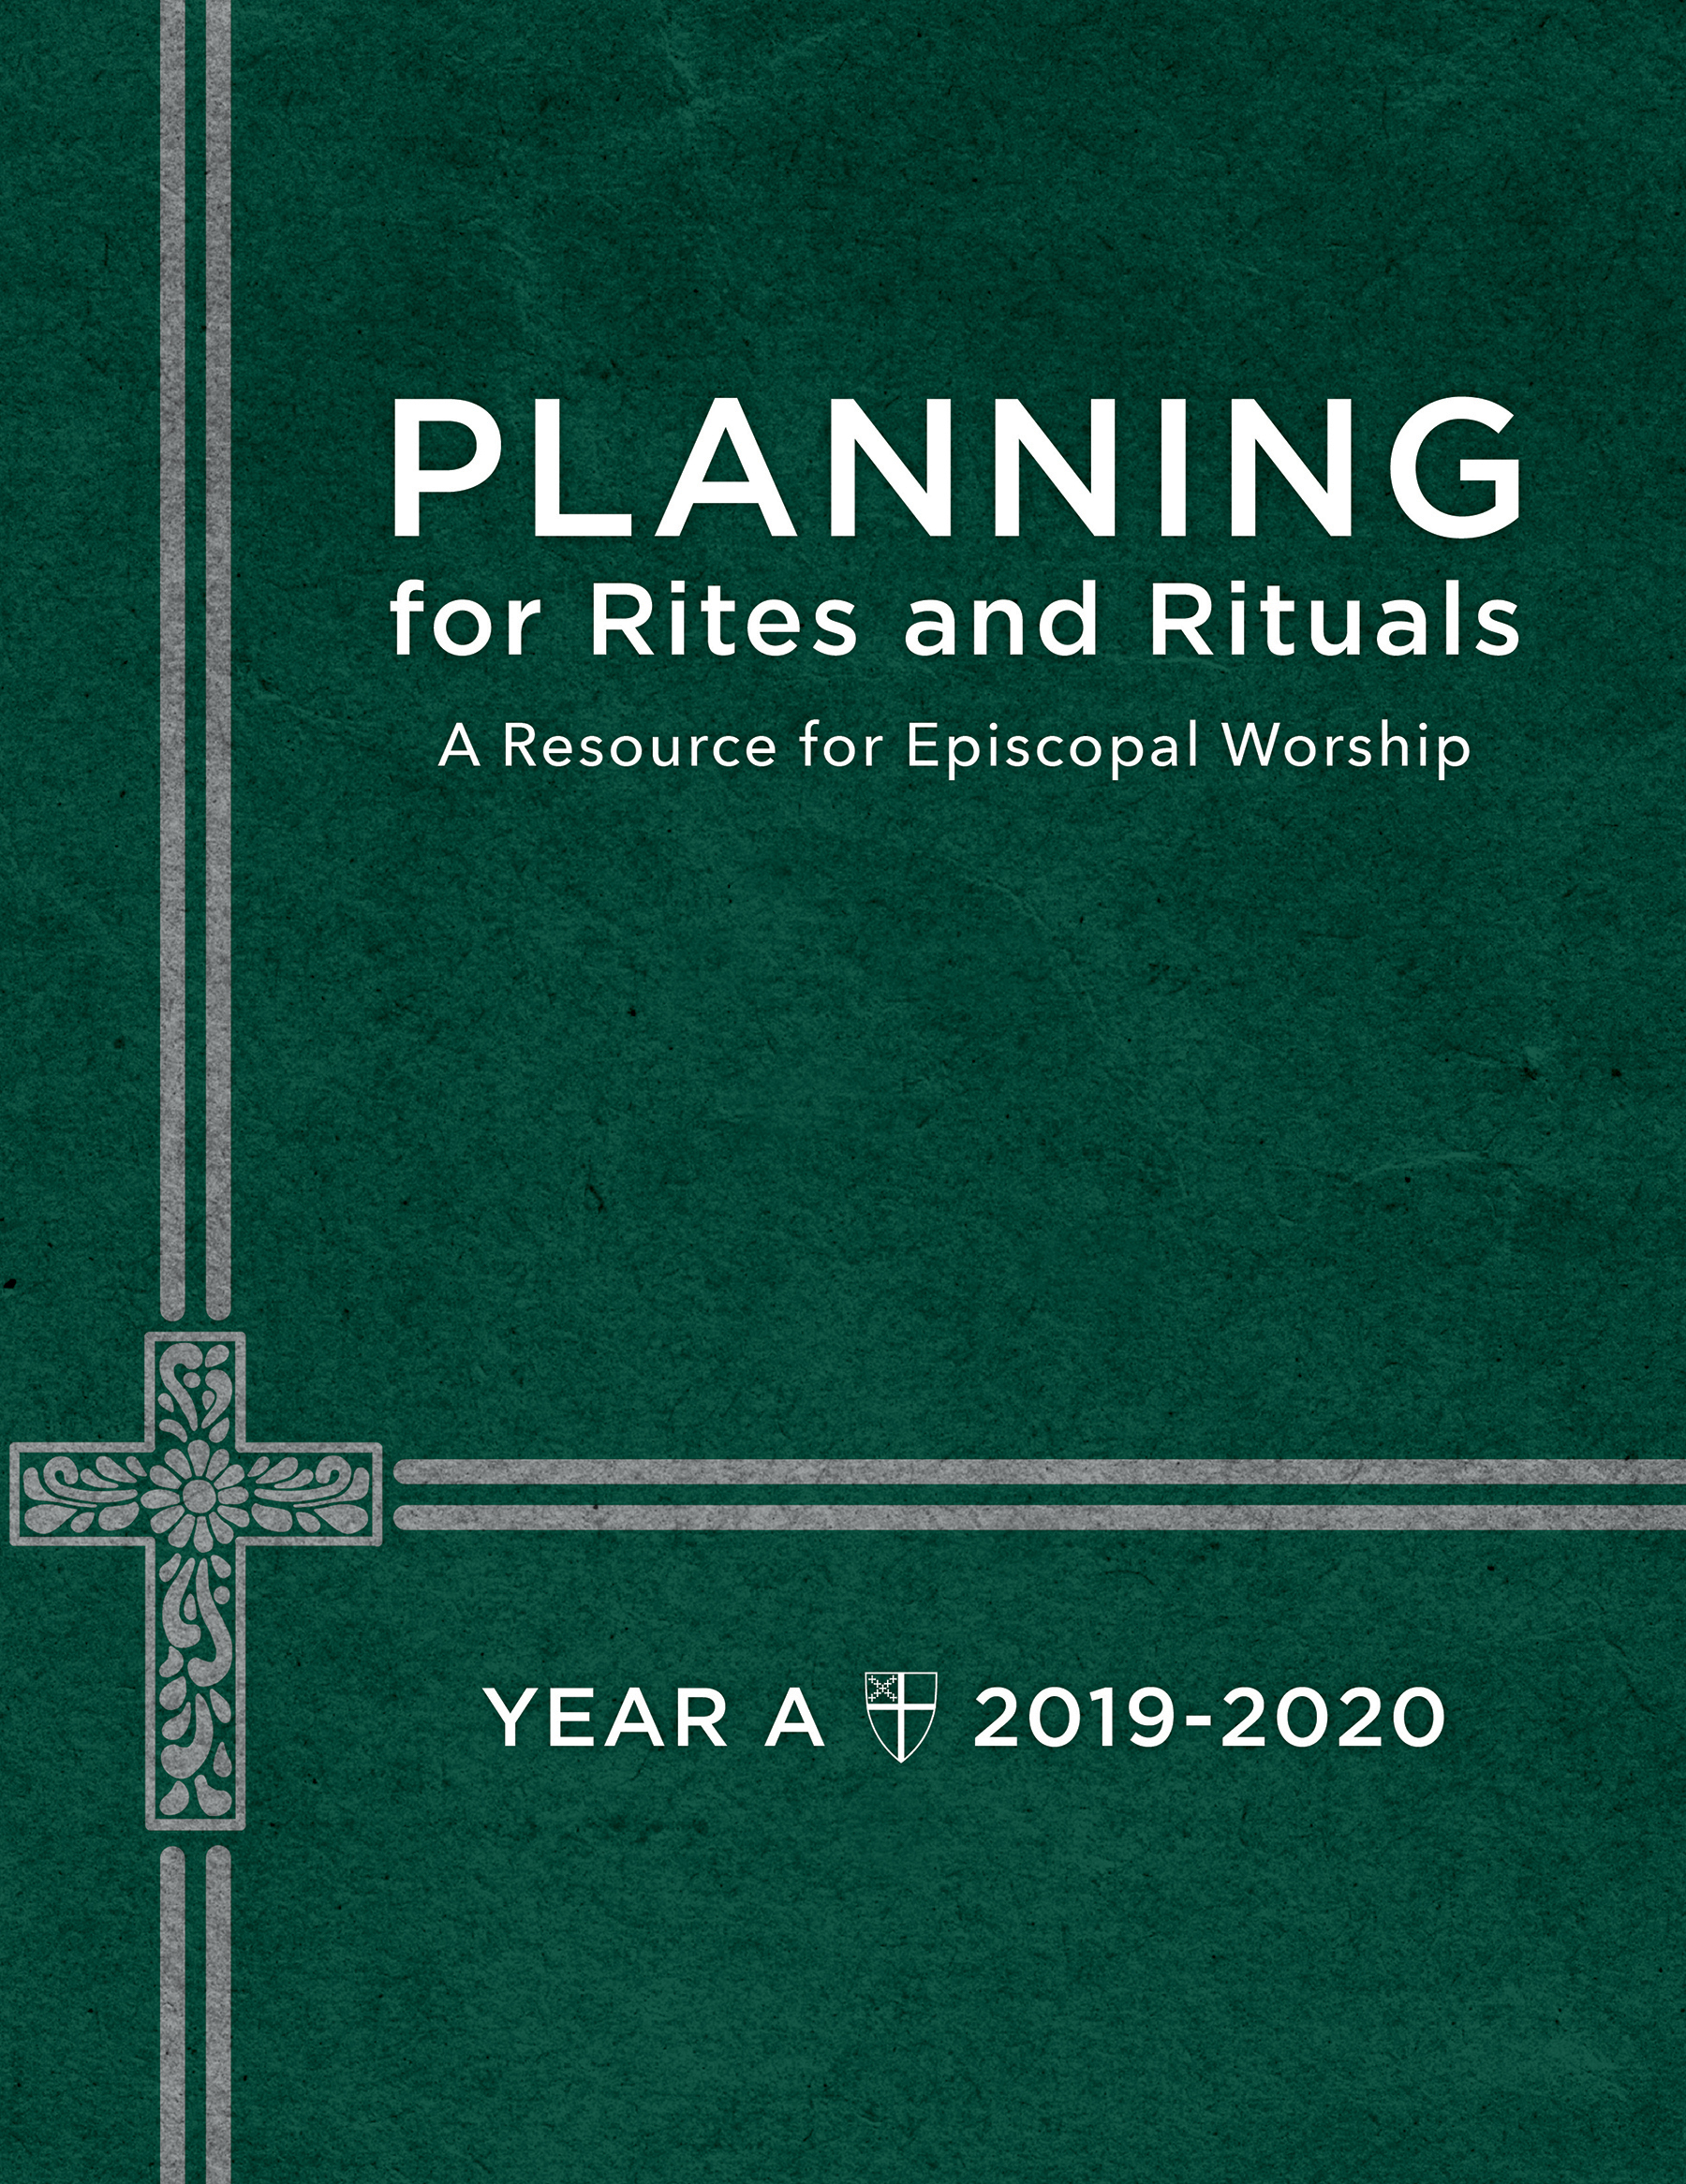 Churchpublishing: Planning For Rites And Rituals 2019-20 intended for Catholic Liturgical Calendar Year C 2019-2020